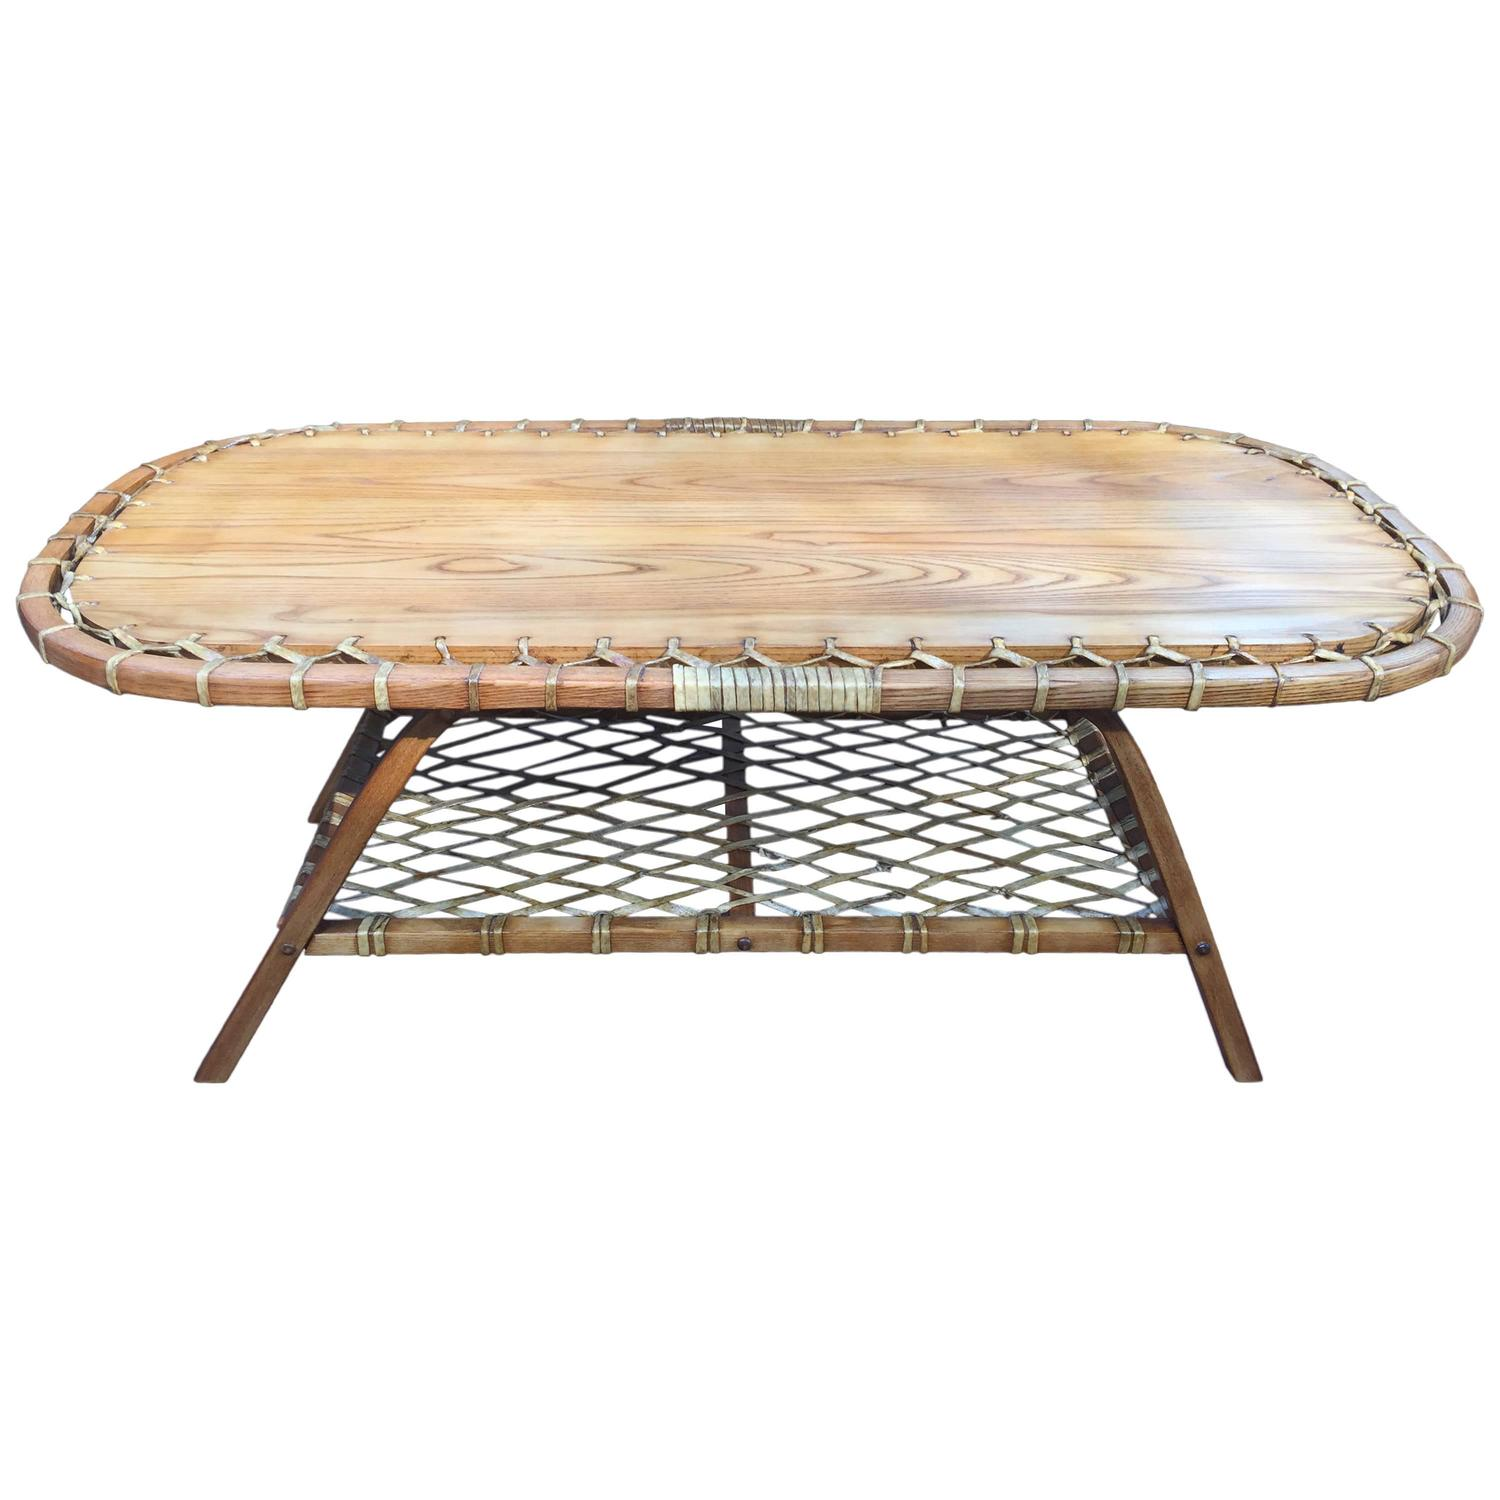 Adirondack Oak And Rawhide Coffee Table At 1stdibs